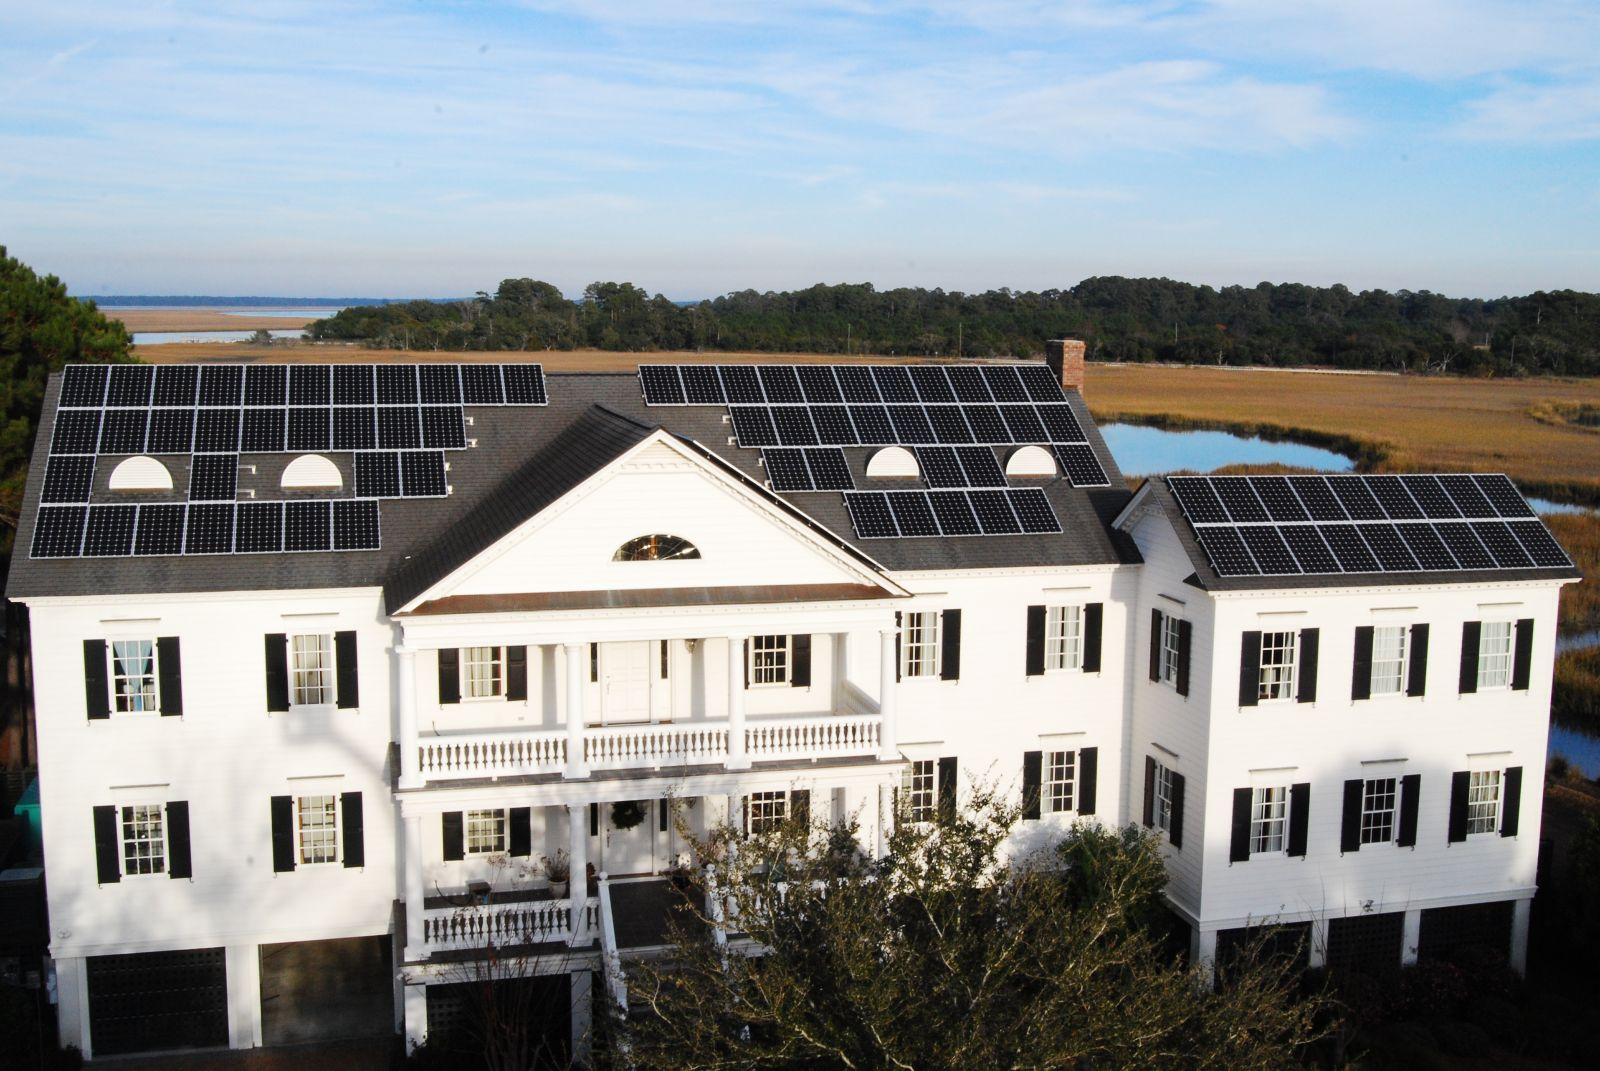 Southern Current deploys solar panels on homes and offices, and builds solar farms. (Photo/Provided)